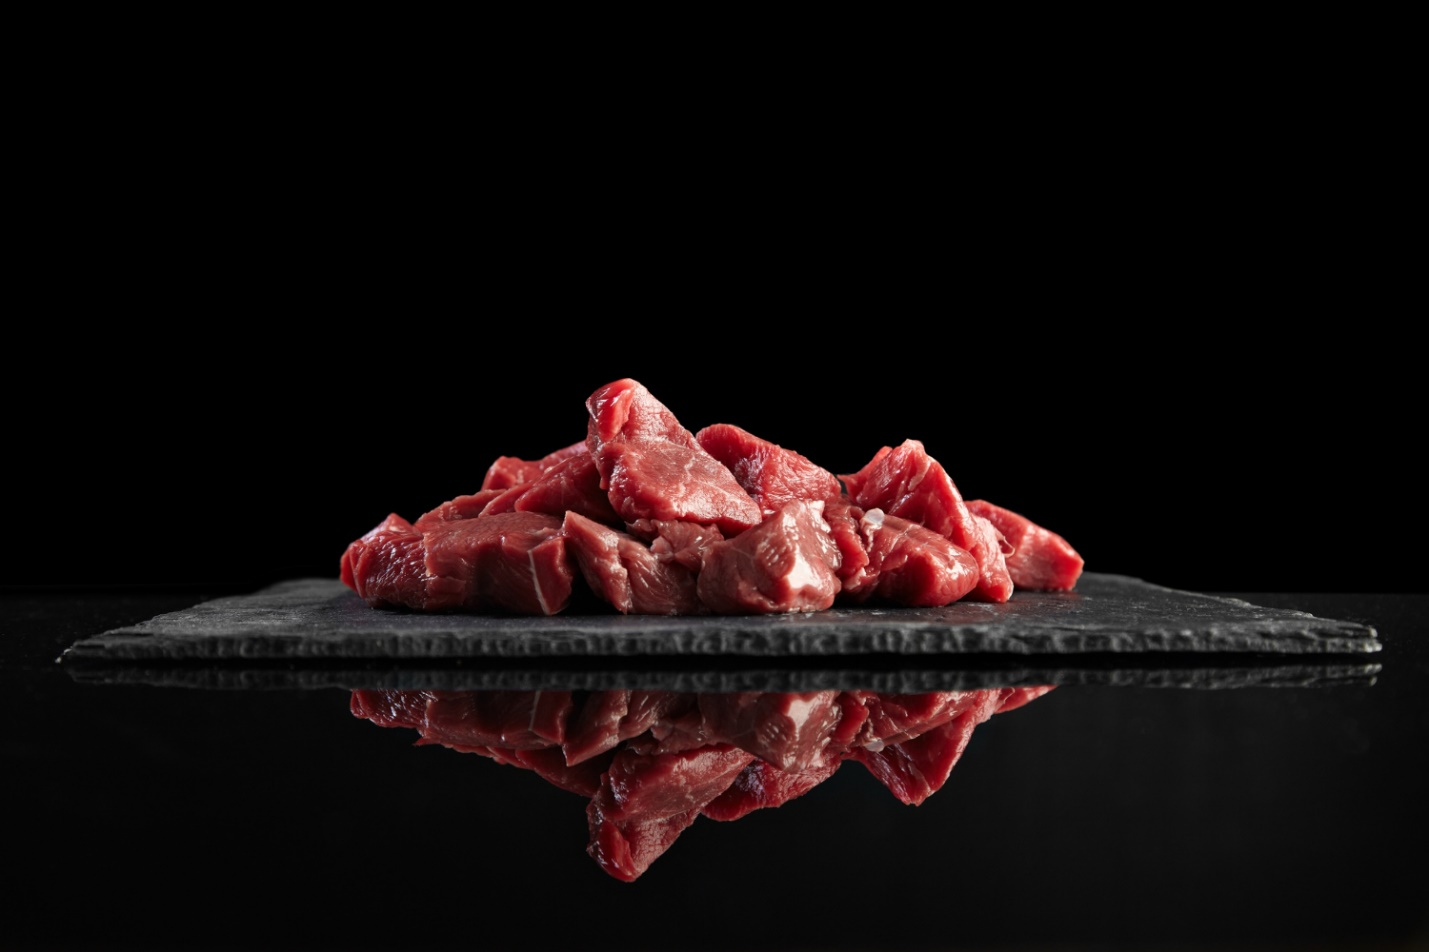 C:\Users\Dell\Downloads\pieces-raw-fresh-meat-isolated-black-stone-board-mirrored-side-view.jpg